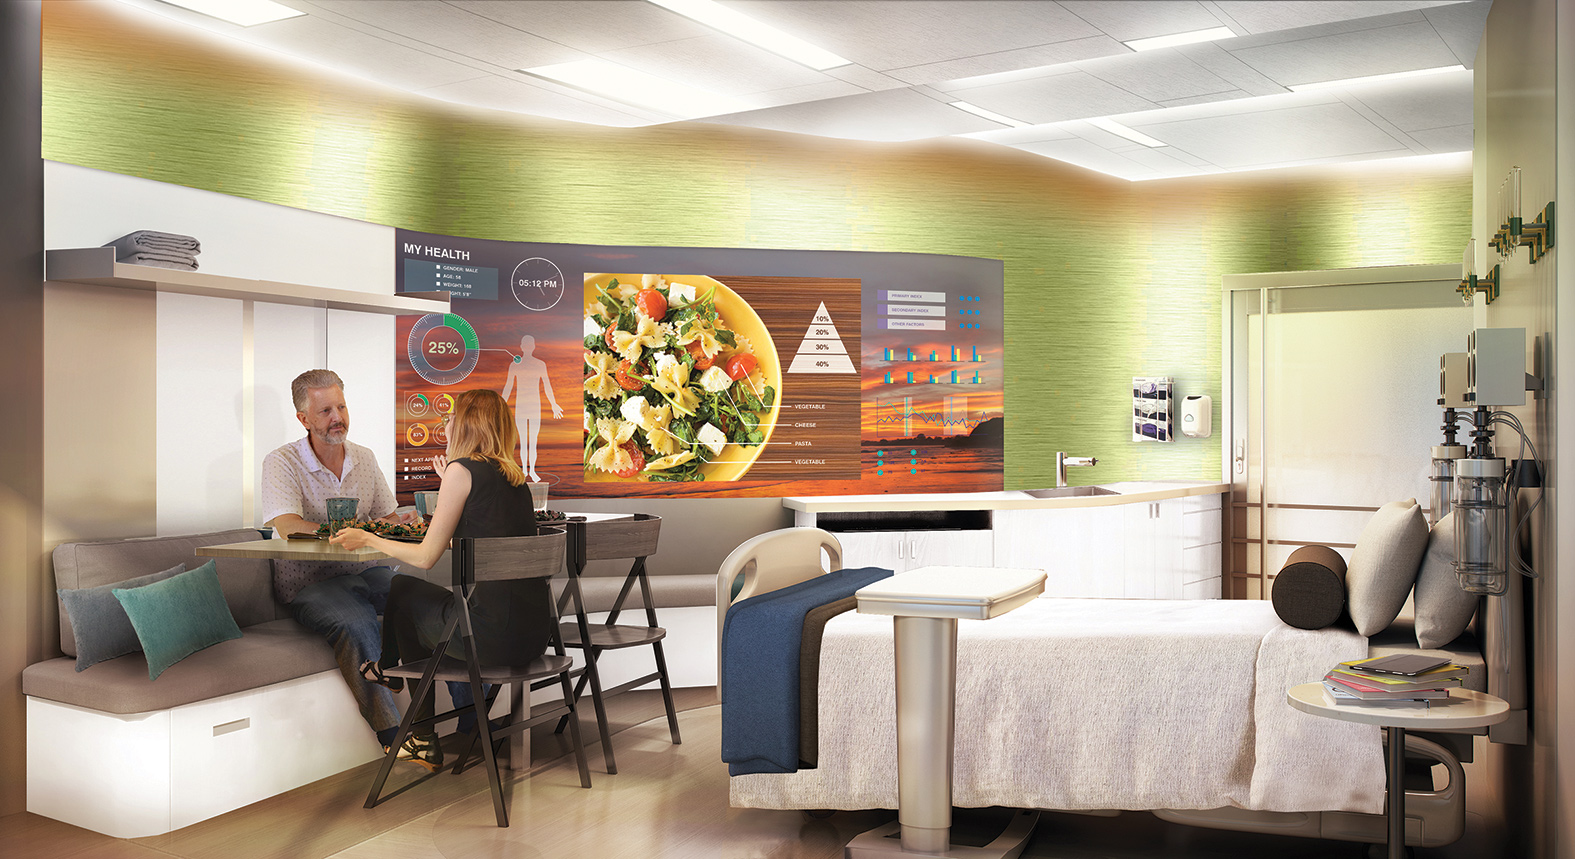 NBBJ Designers Have Developed A Patient Room Concept That Can Be  Reconfigured Throughout The Day To Provide Furnishings For Work, Sleep And Family  Dining ...